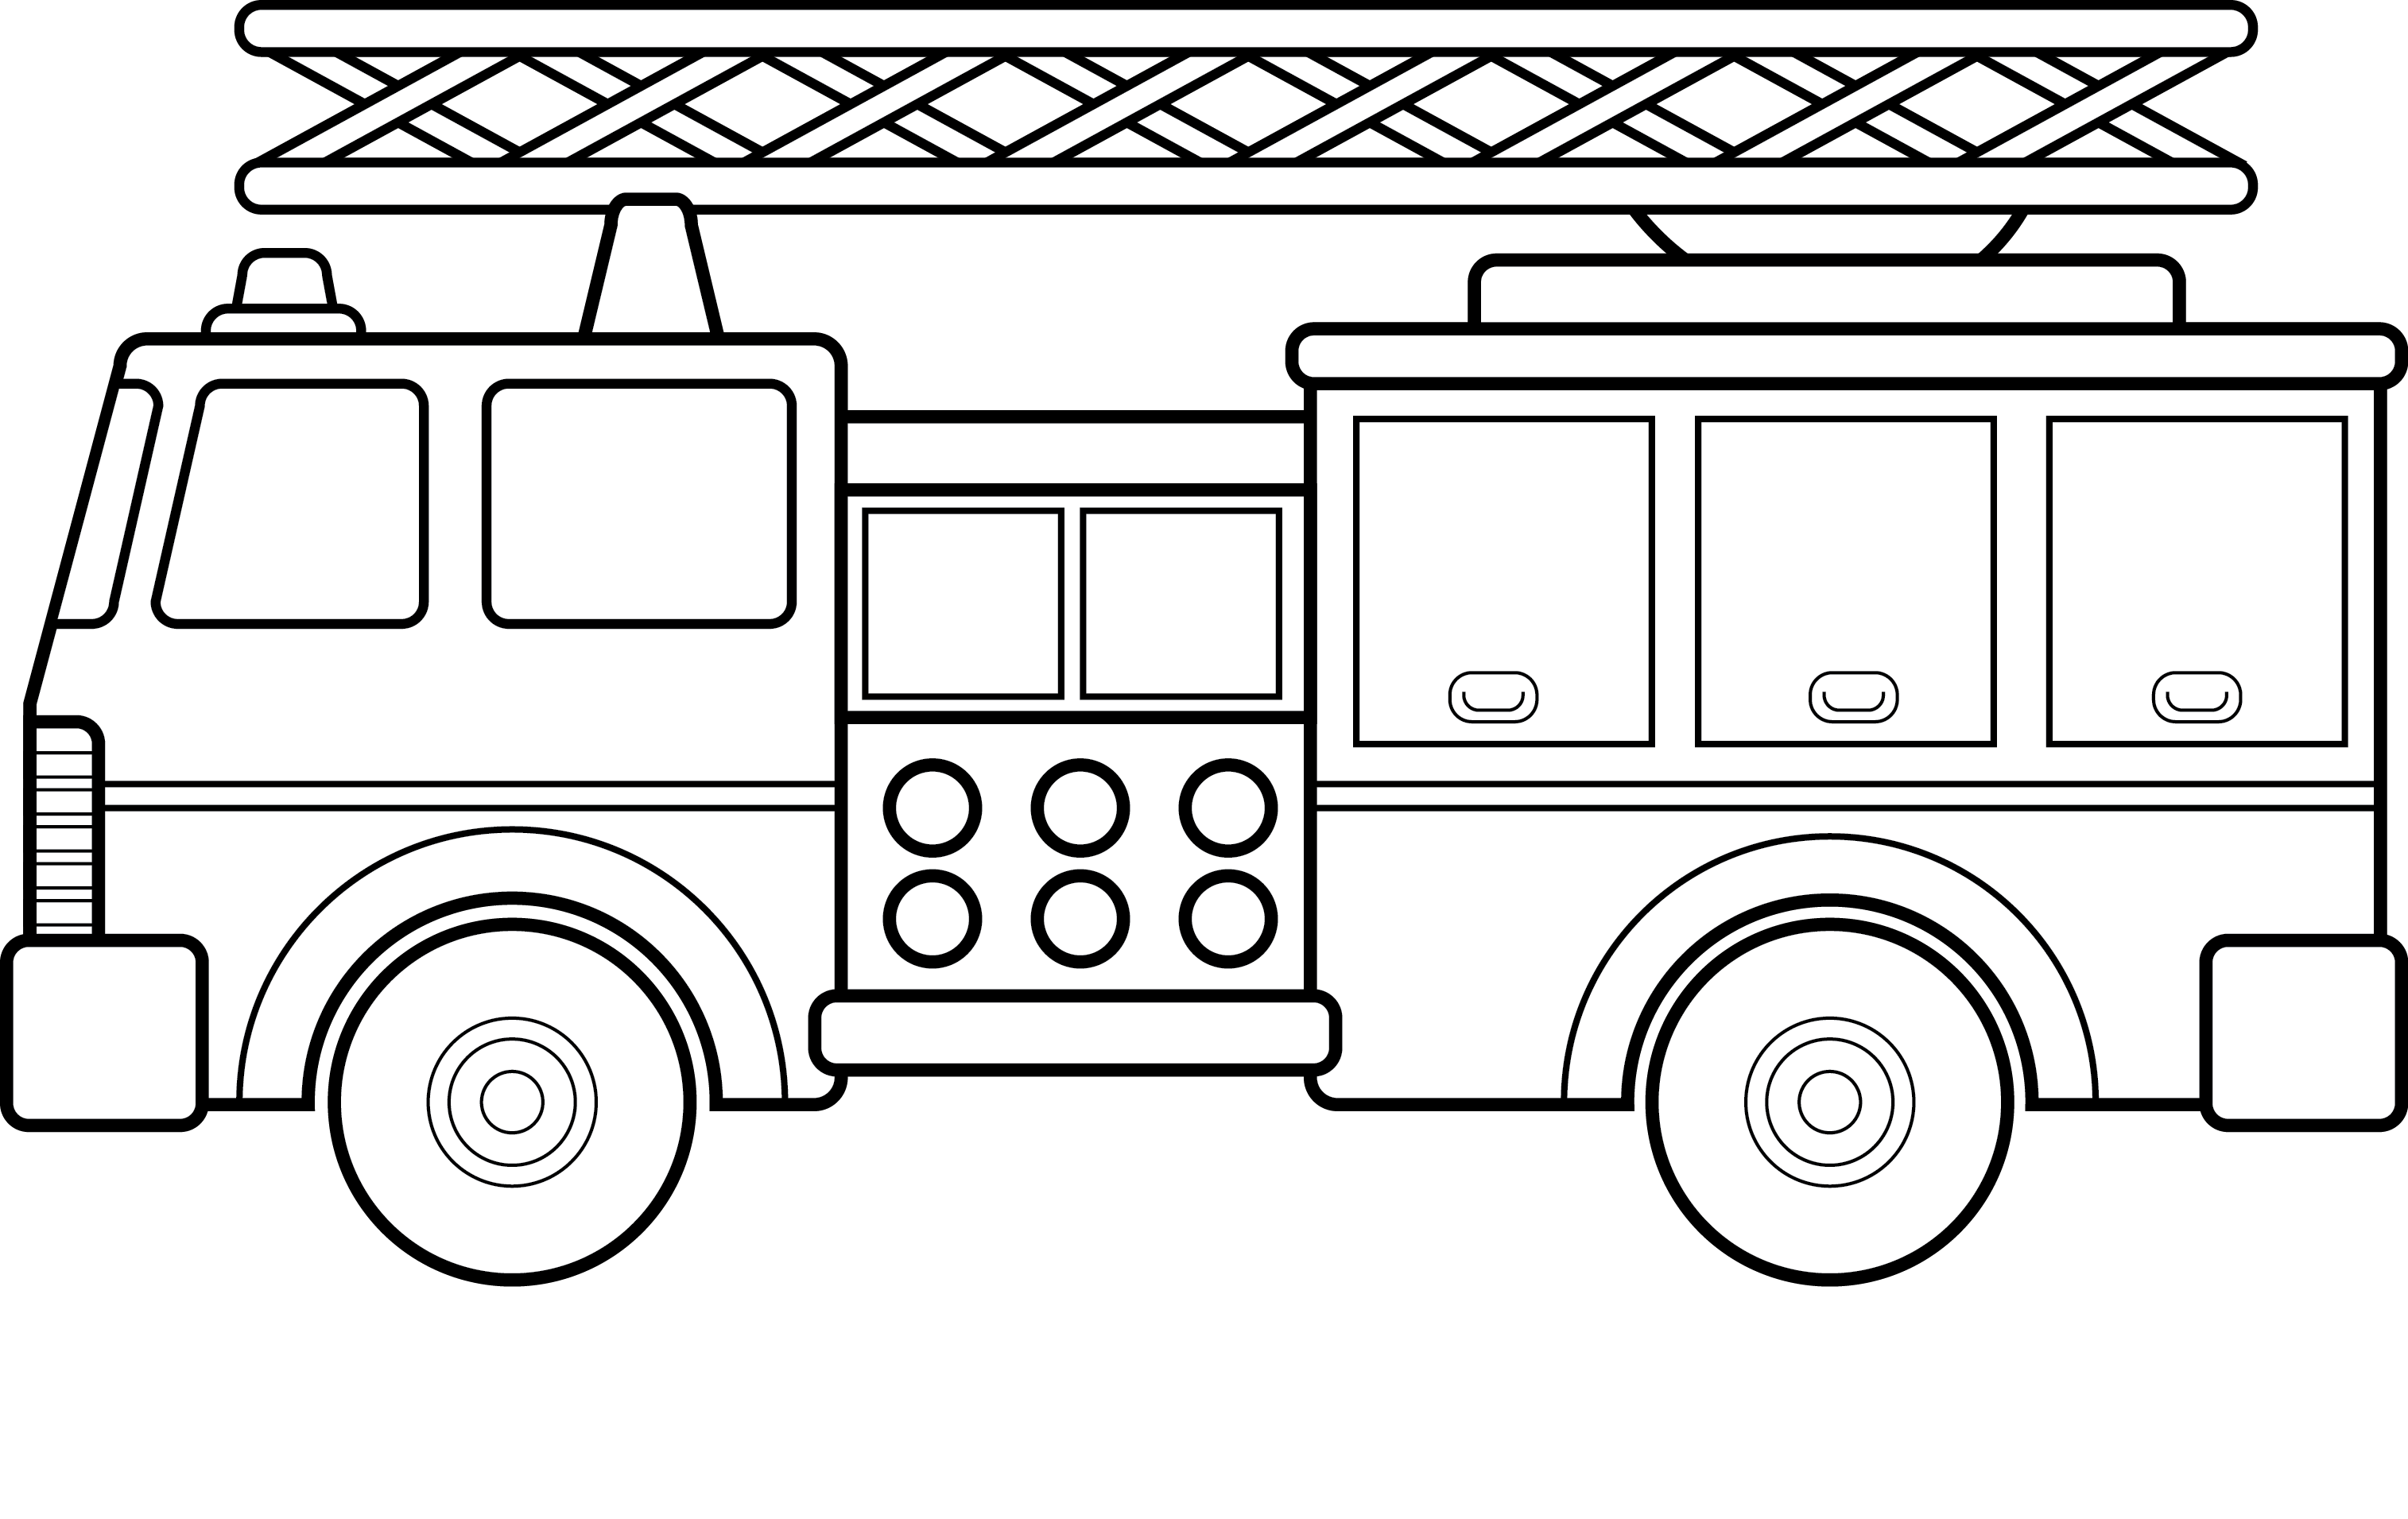 printable coloring pages trucks free printable monster truck coloring pages for kids printable coloring pages trucks